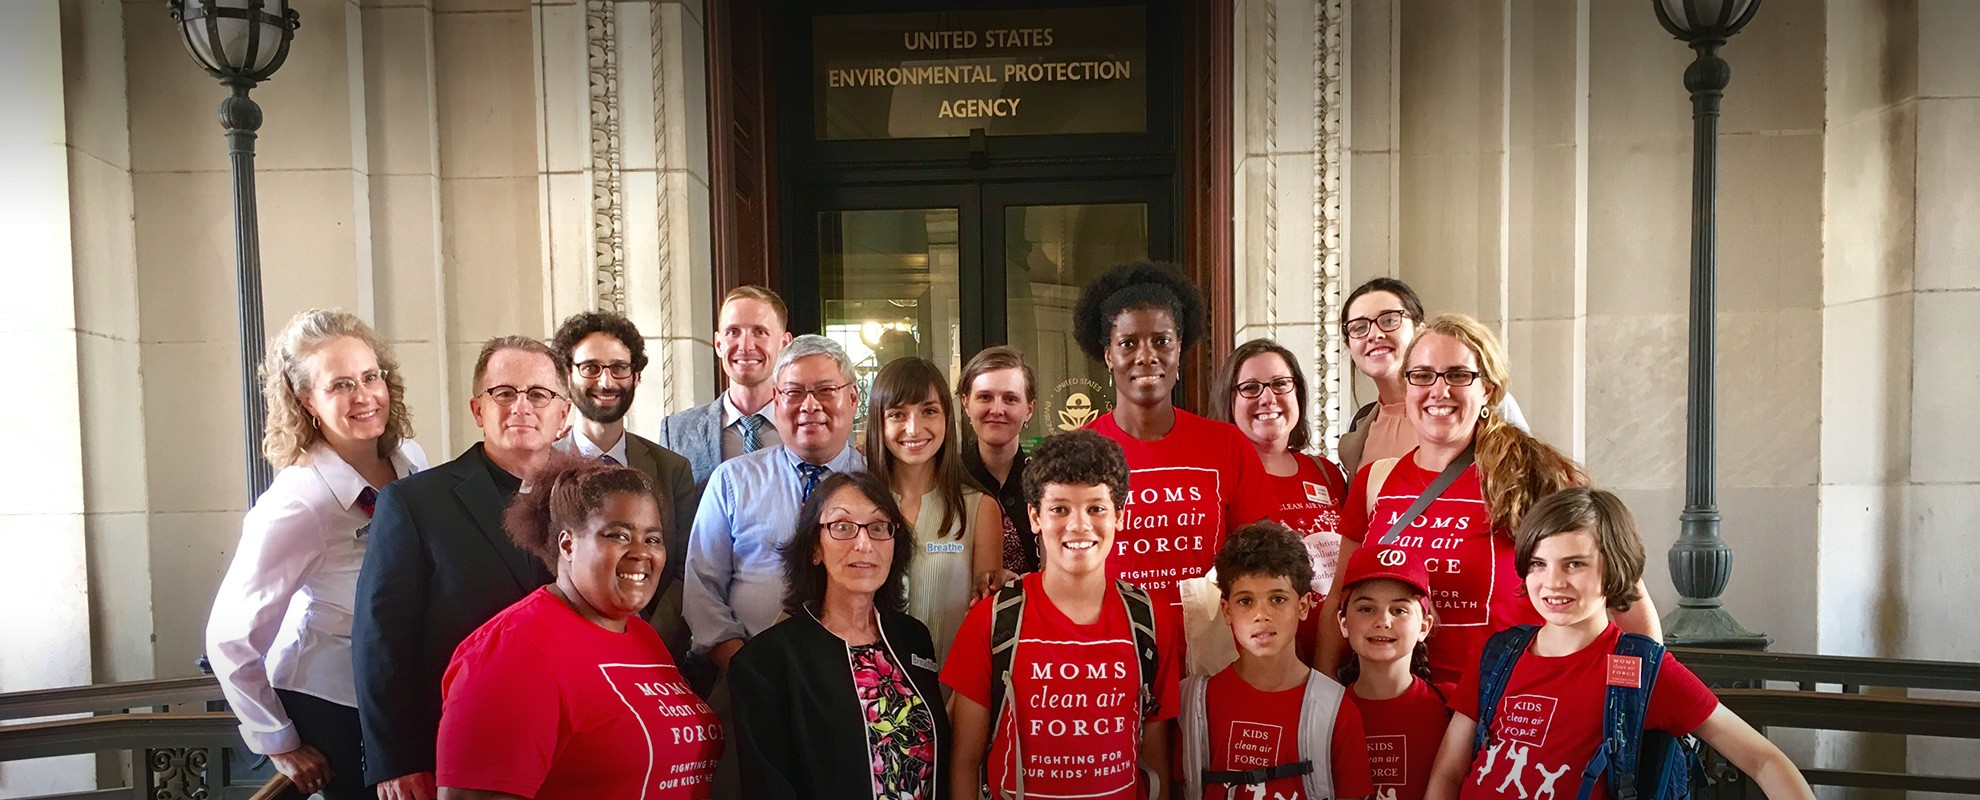 With moms, doctors and faith leaders who were on Capitol Hill to fight for clean air protections.